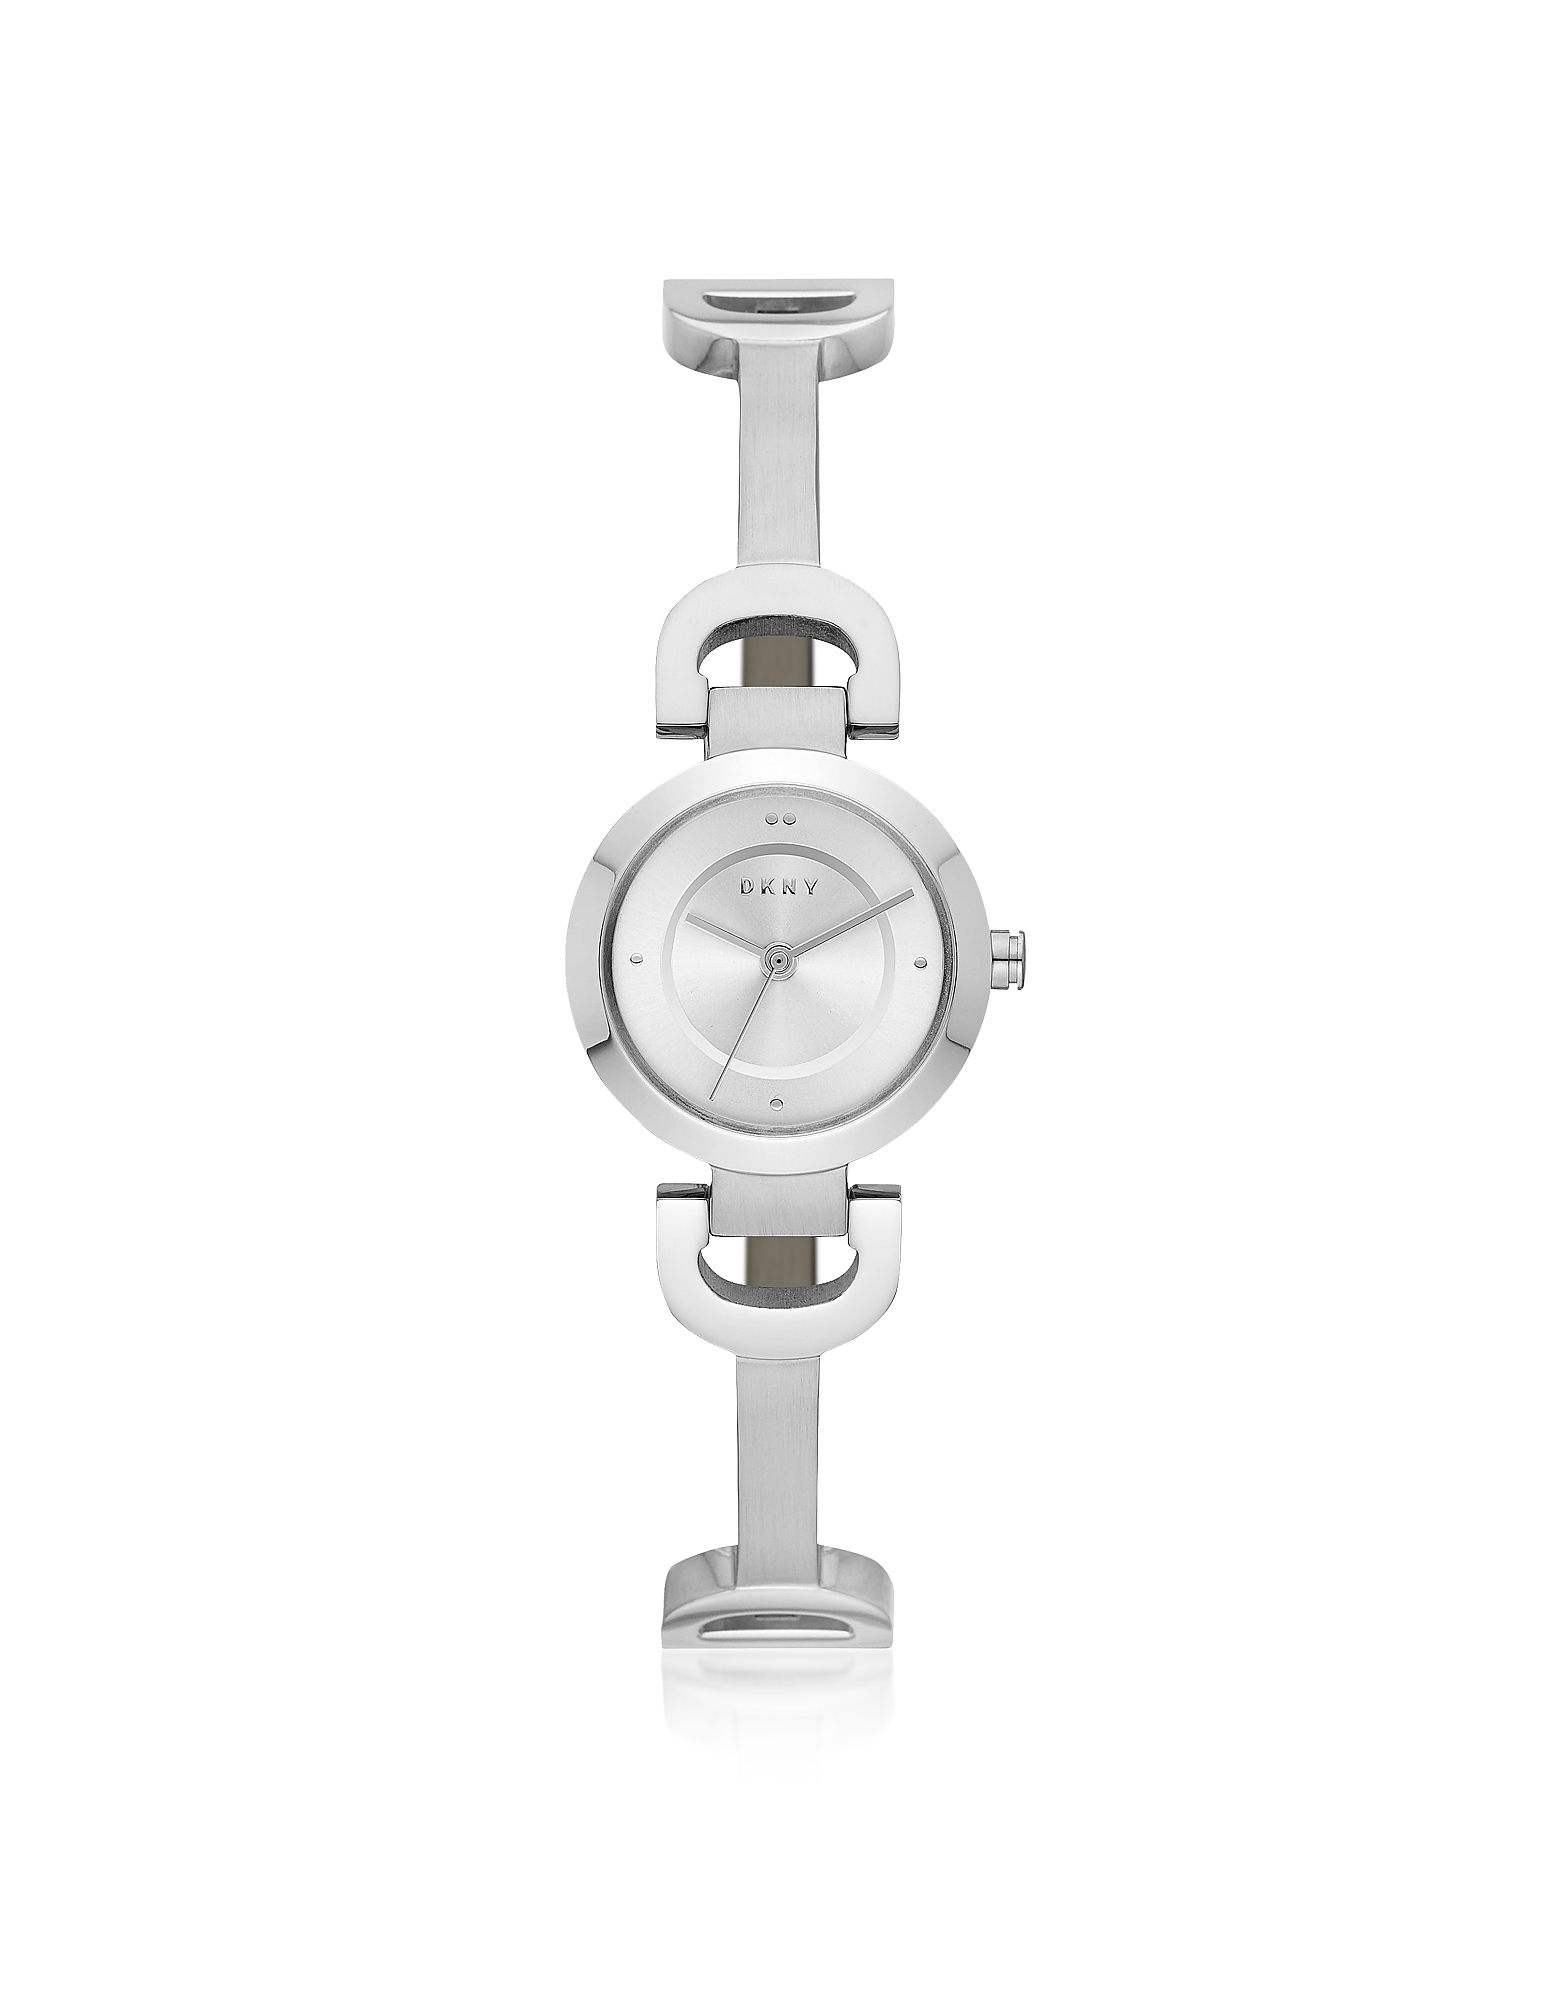 DKNY Women's Watches, City Link Silver Tone Bangle Women's Watch